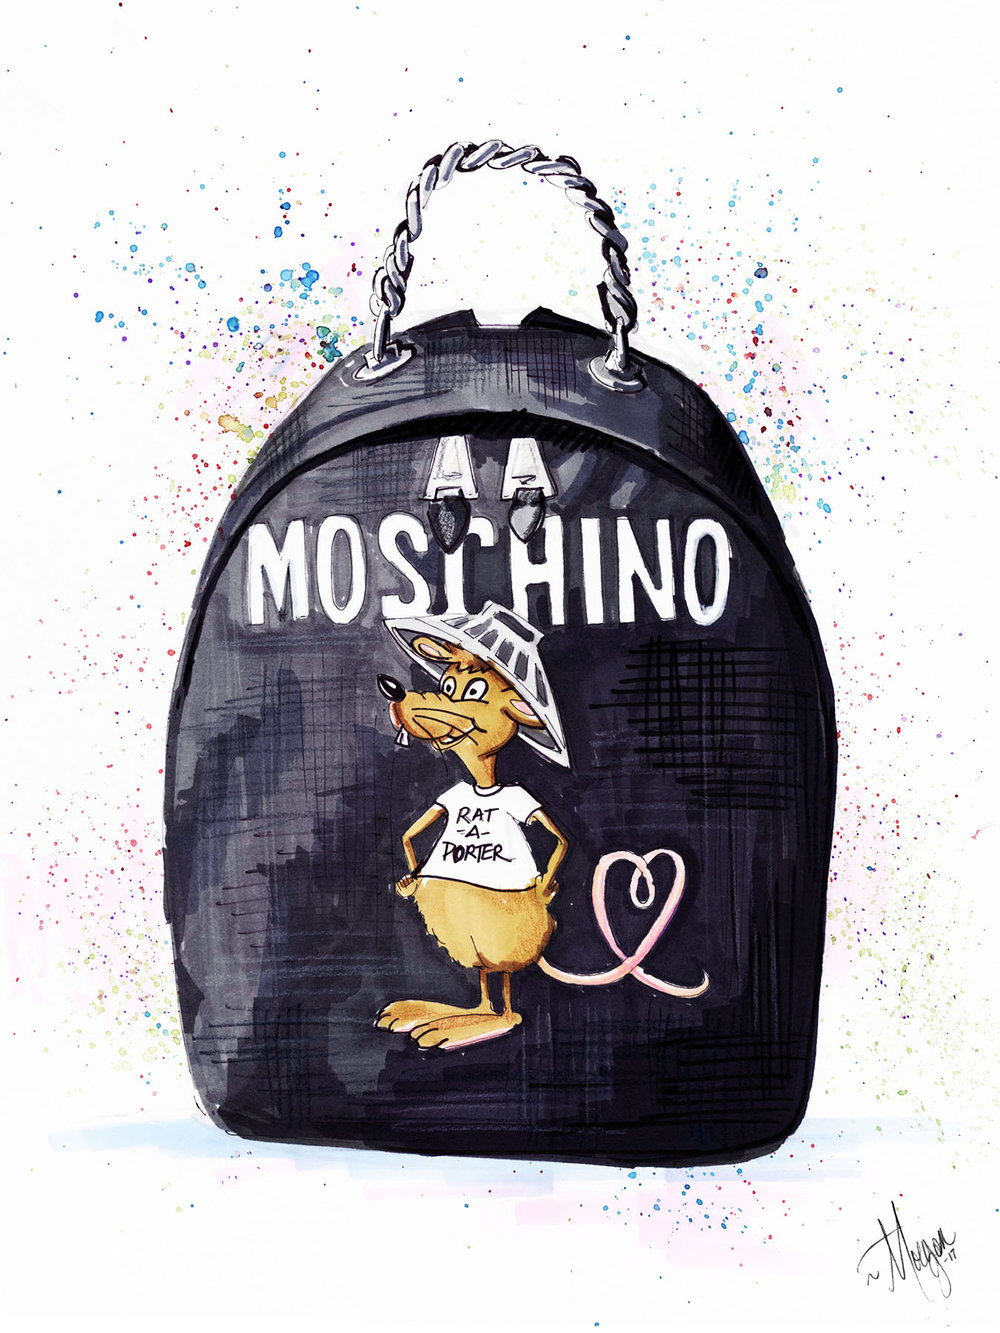 moschino-backpack-illustration-morgan-swank-studio.jpg